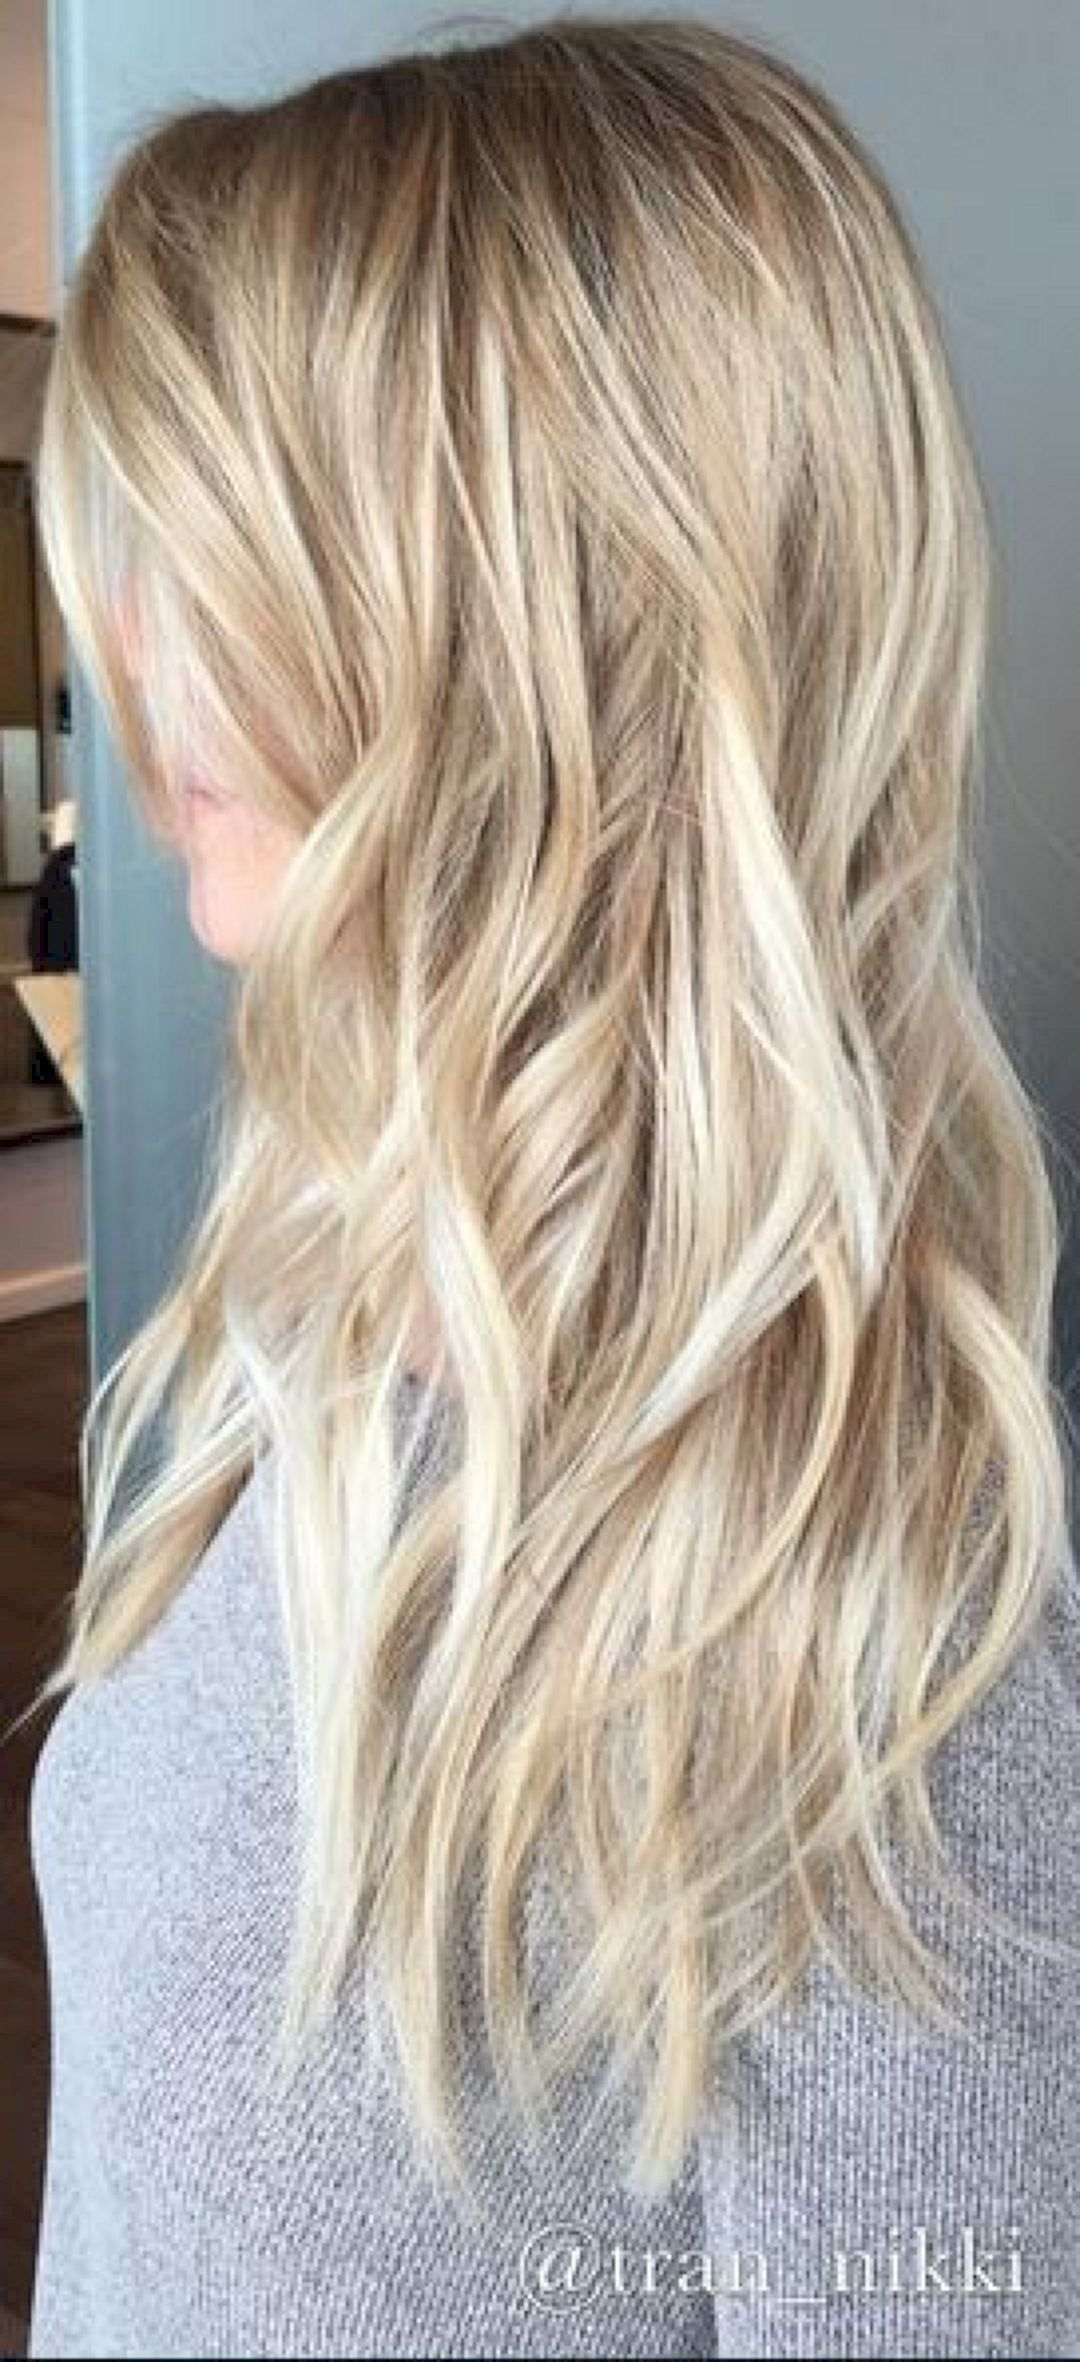 230+ Stunning Blonde Hair Color Ideas You Have Got to See and Try ...